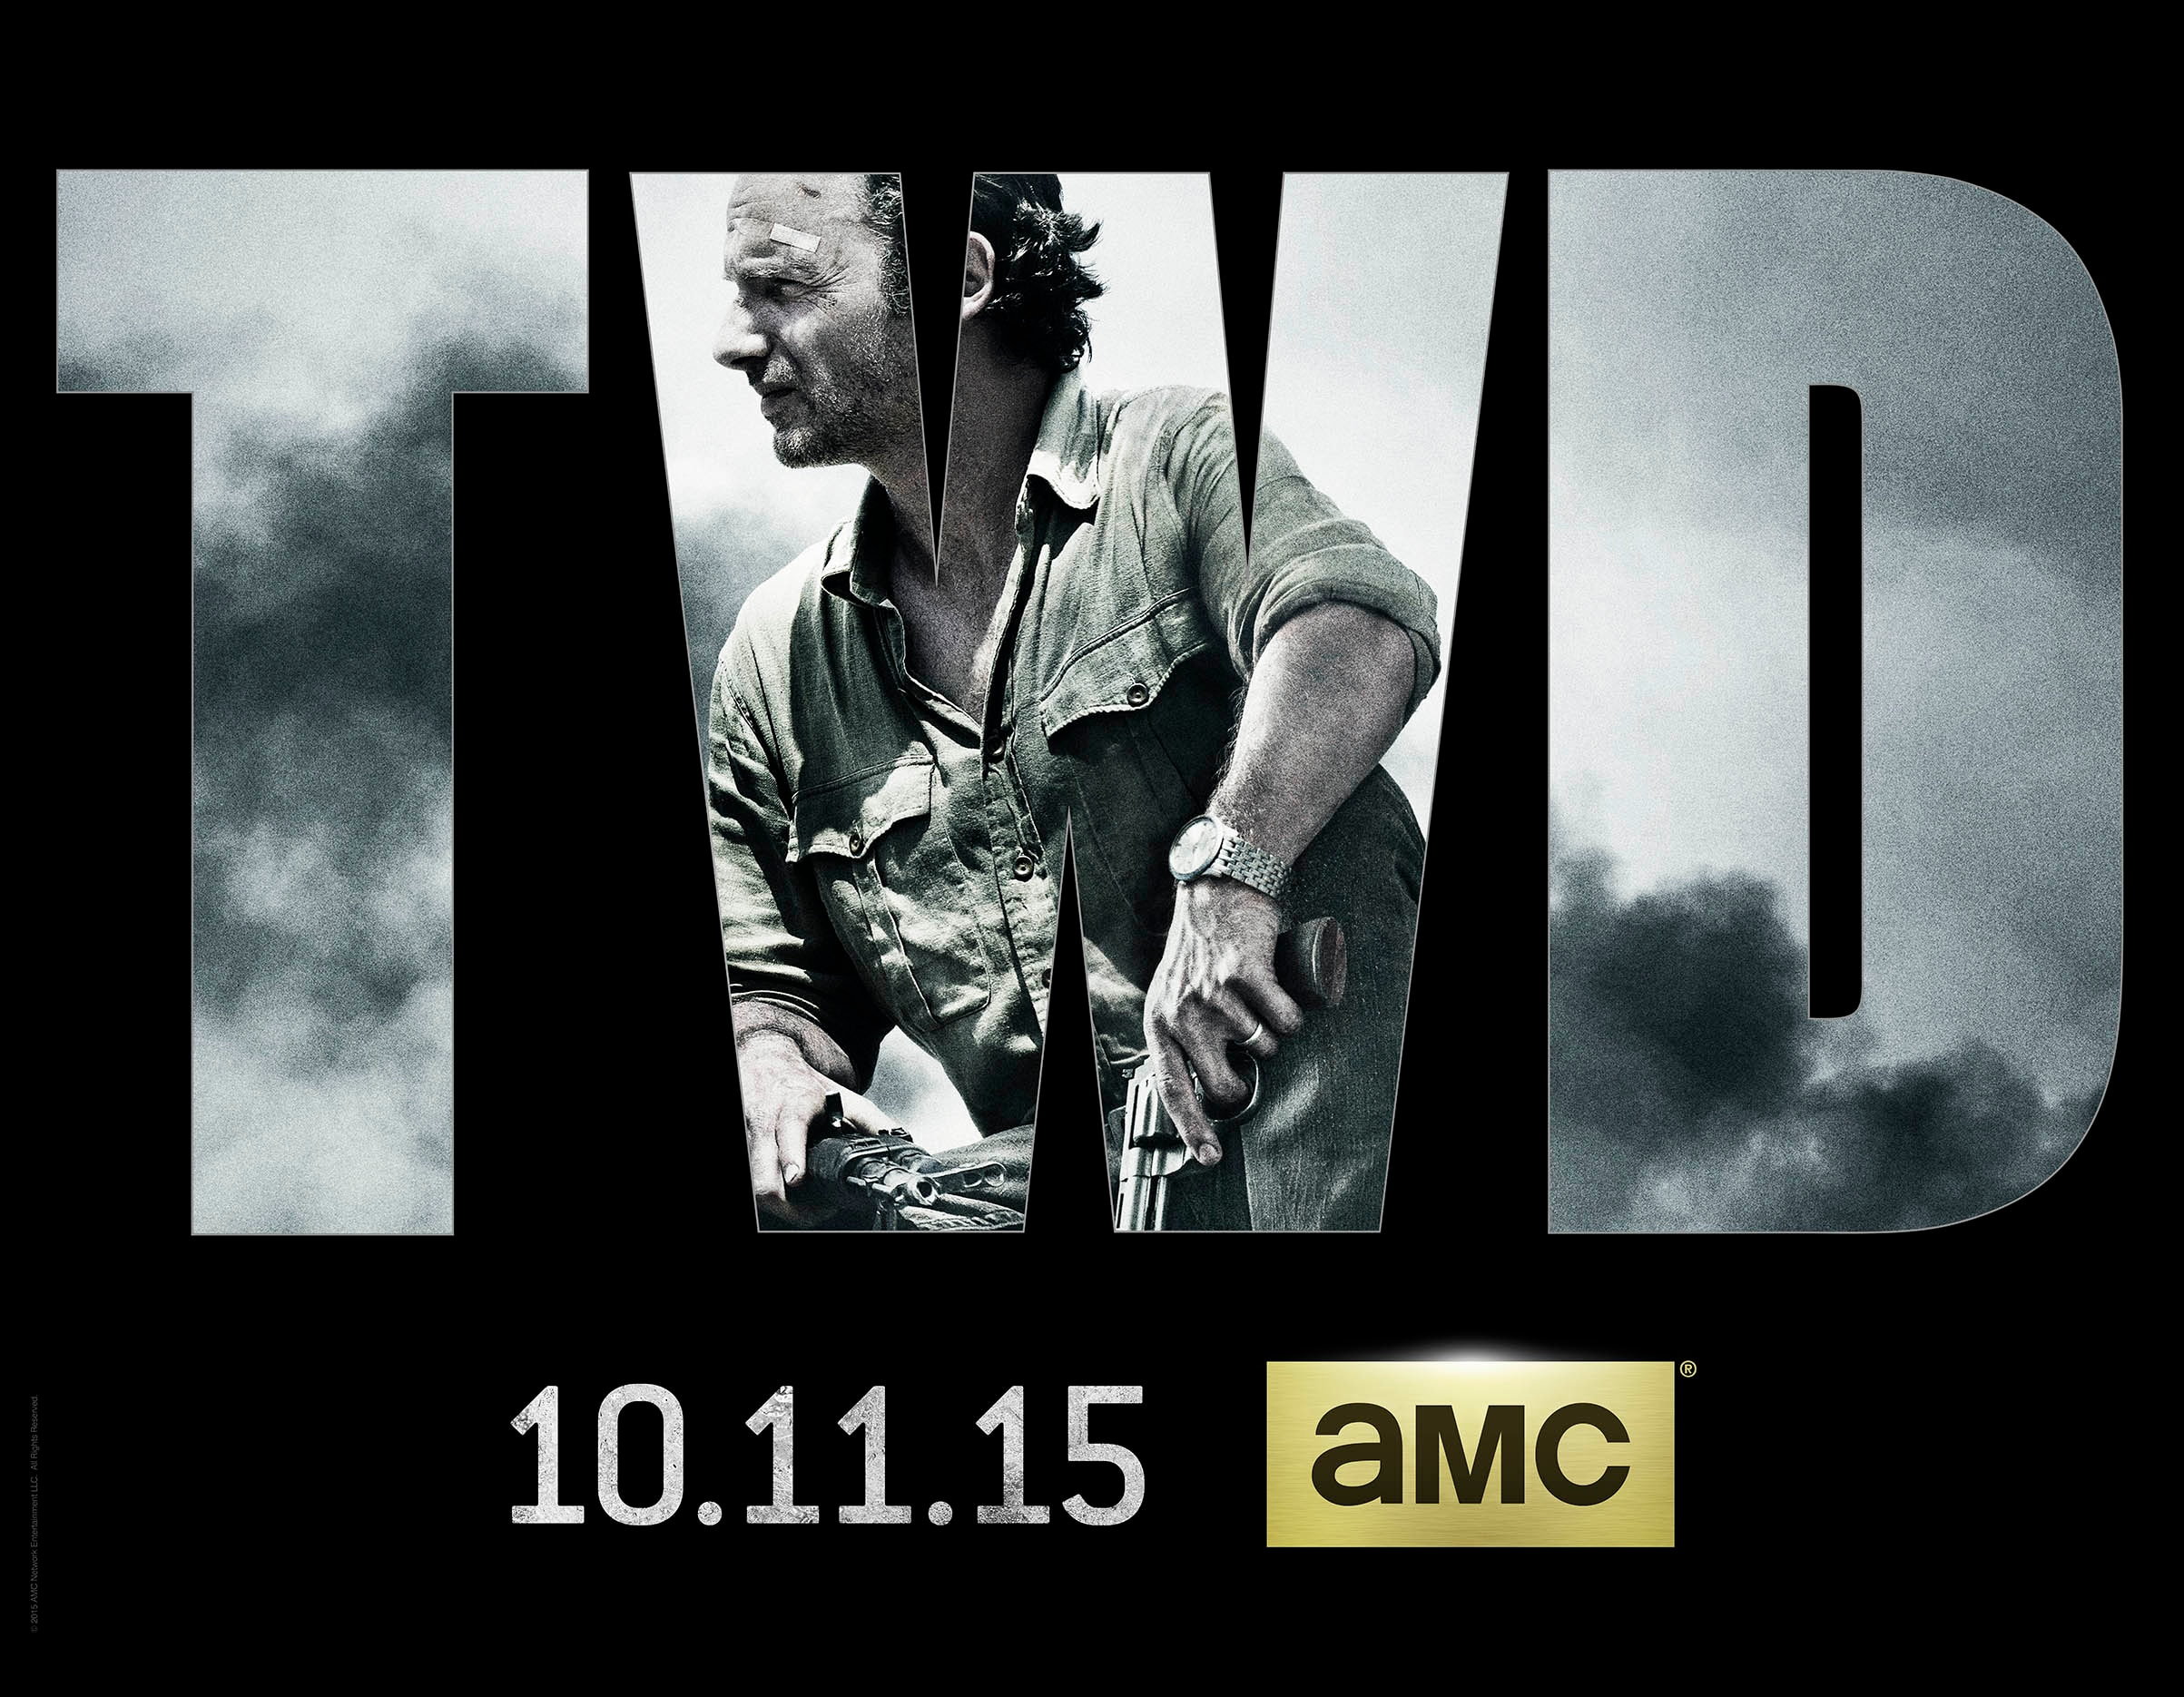 TWD S6 Key Art - The Walking Dead's Rick, Carol, and Michonne Transform in These 'Then and Now' Videos